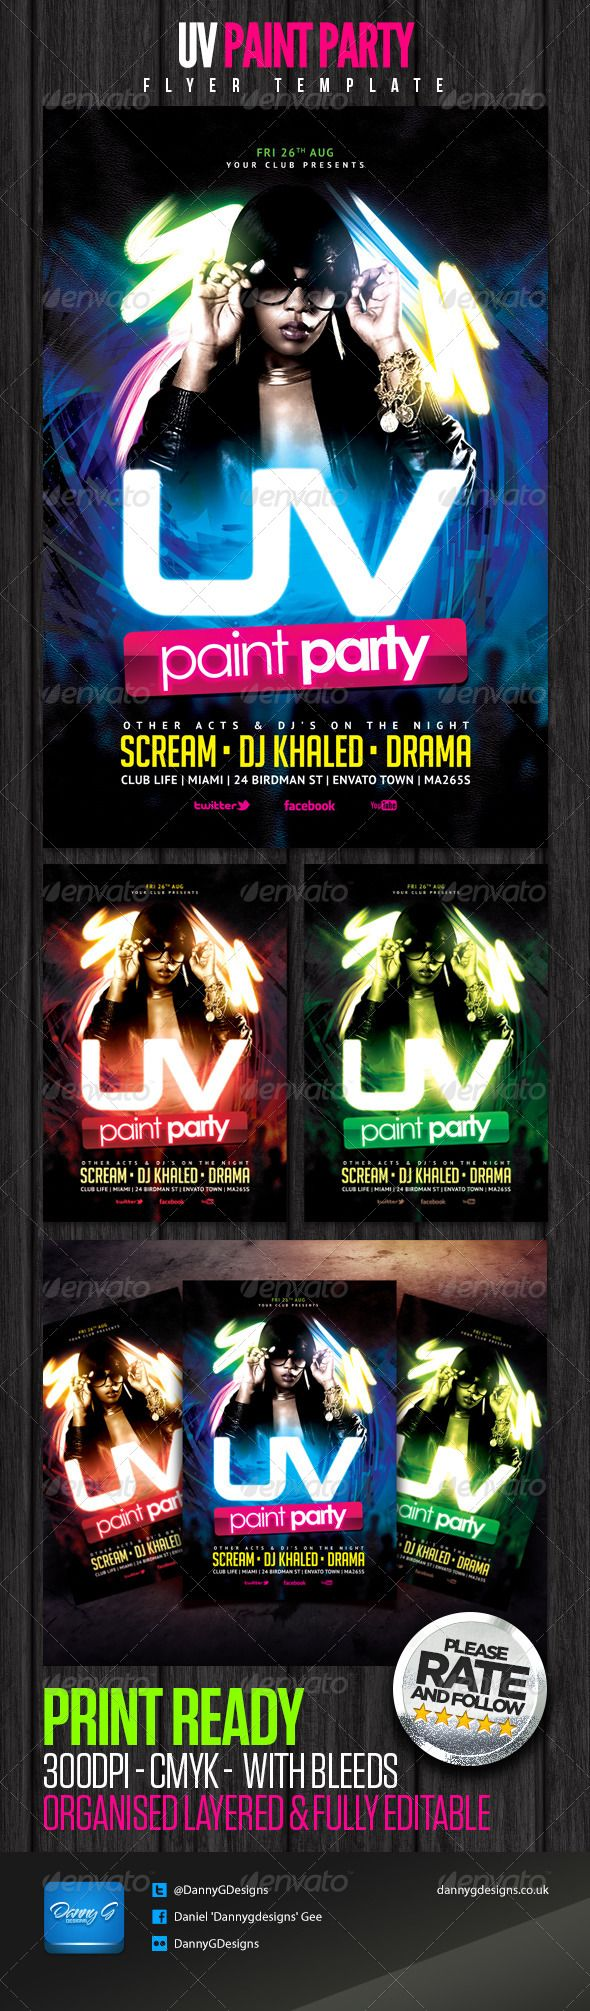 UV Paint Party Flyer Template  - PSD Template • Only available here ➝ http://graphicriver.net/item/uv-paint-party-flyer-template/5258711?ref=pxcr